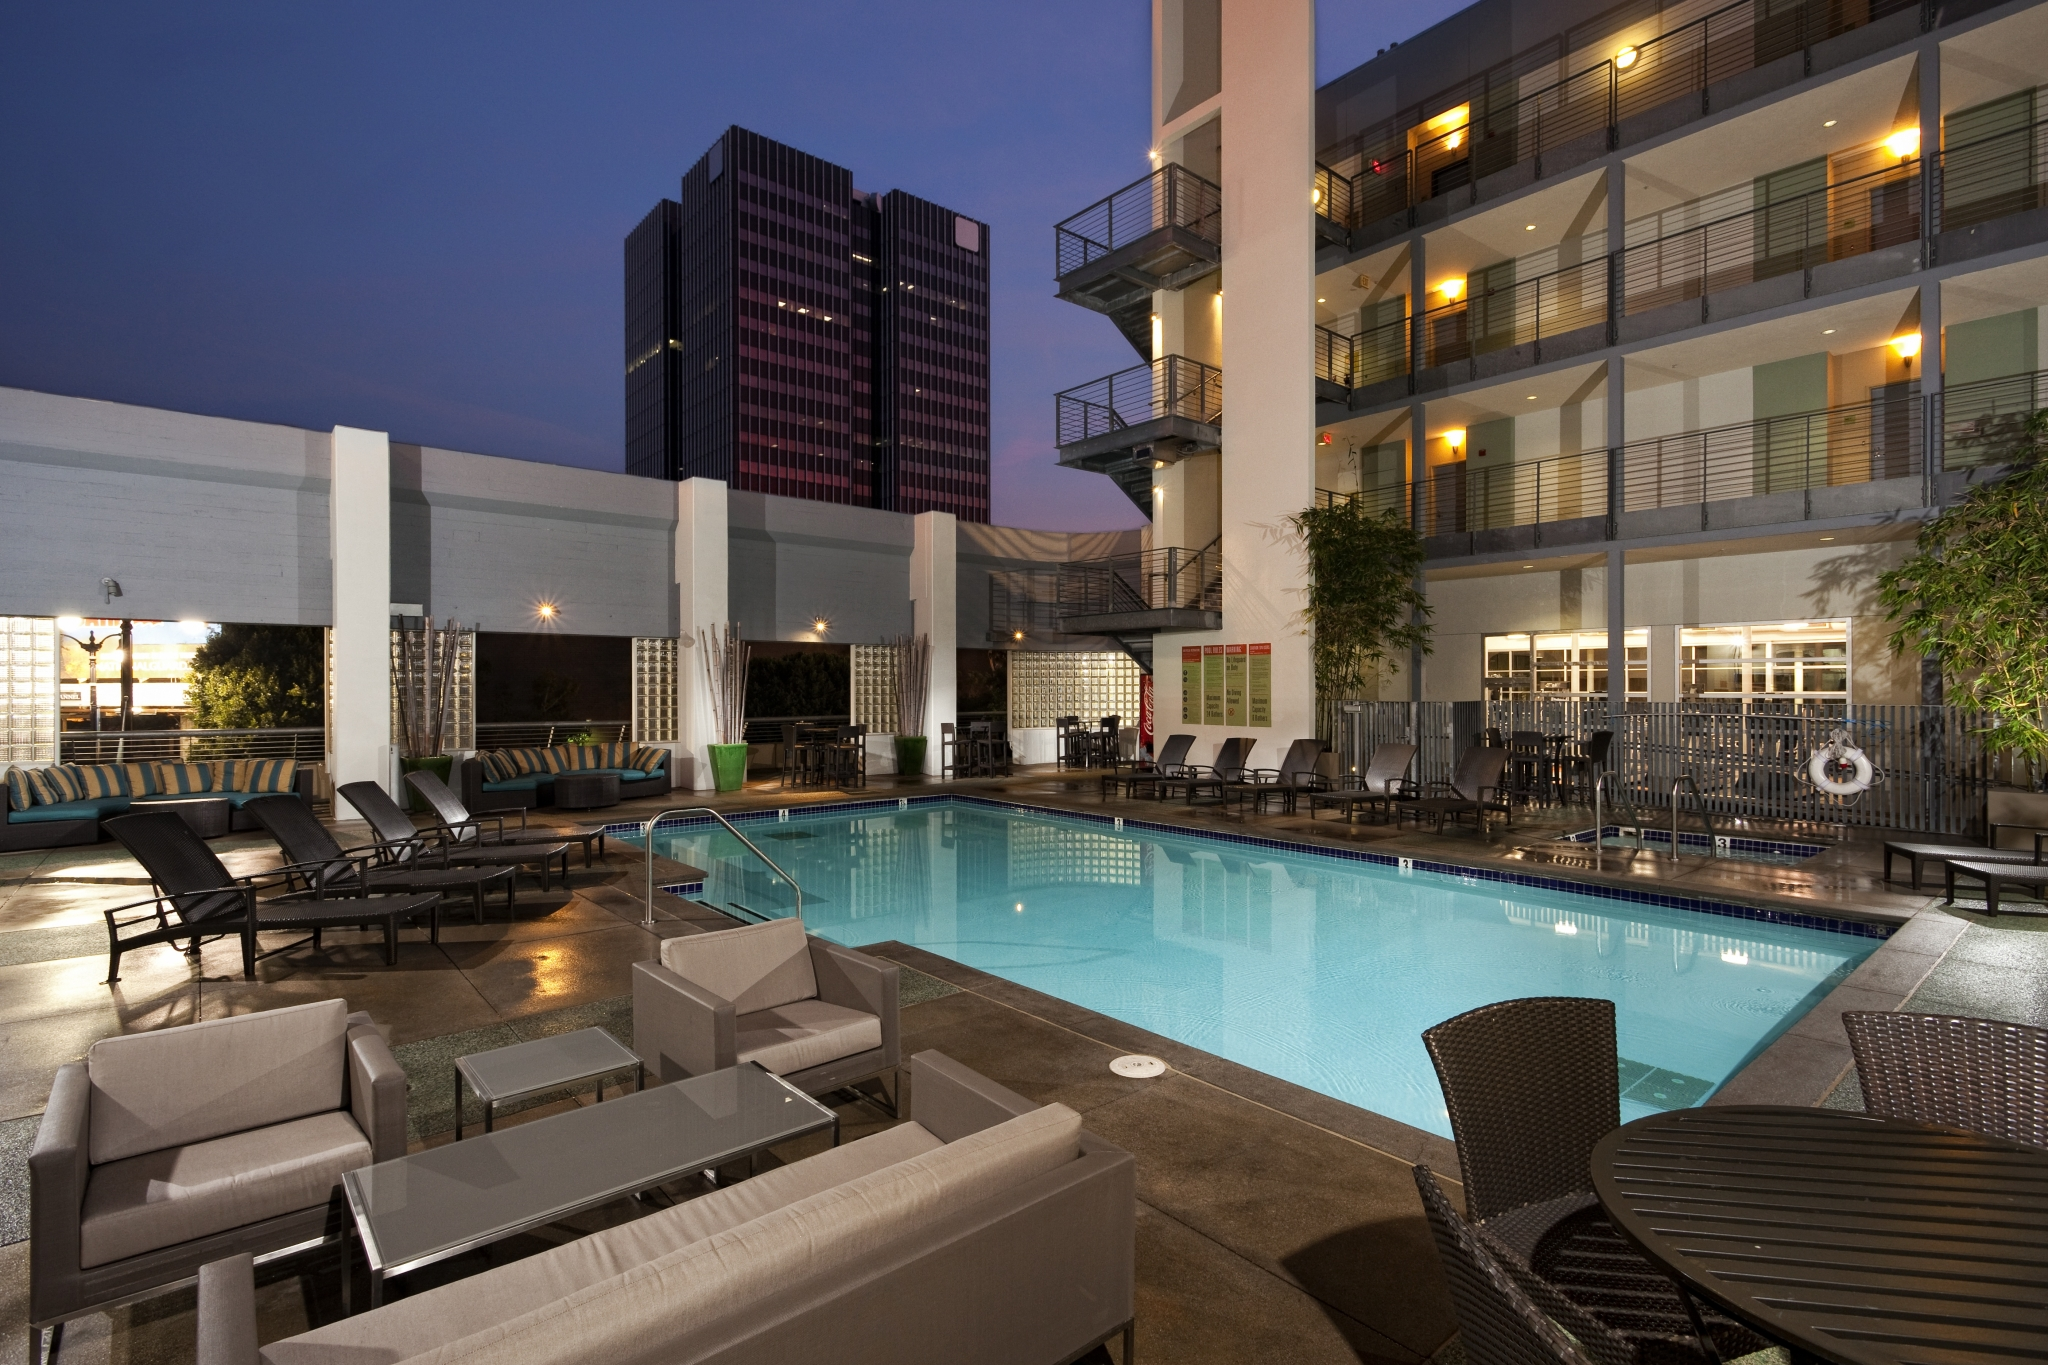 Resort-style pool at Sunset and Vine Apartments in Hollywood CA